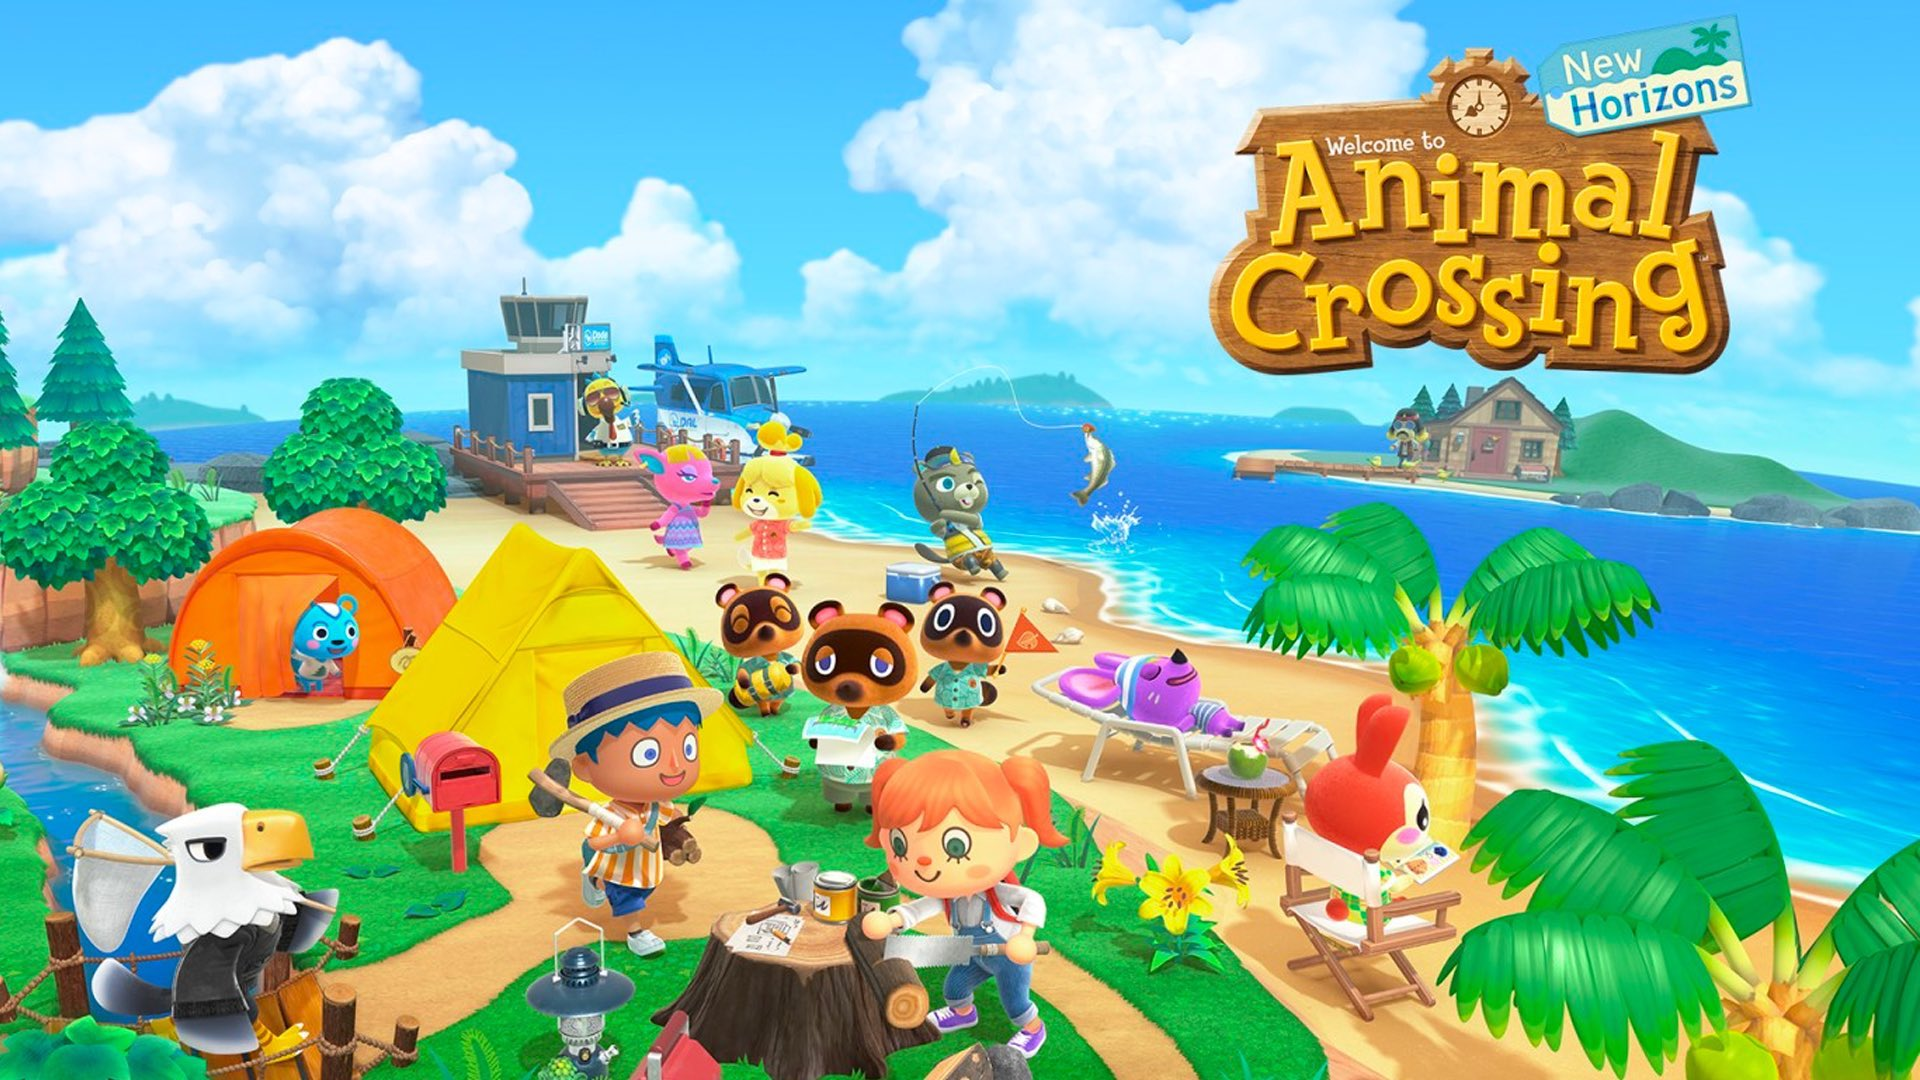 Animal Crossing 2 - Splash screen scene from the popular computer game